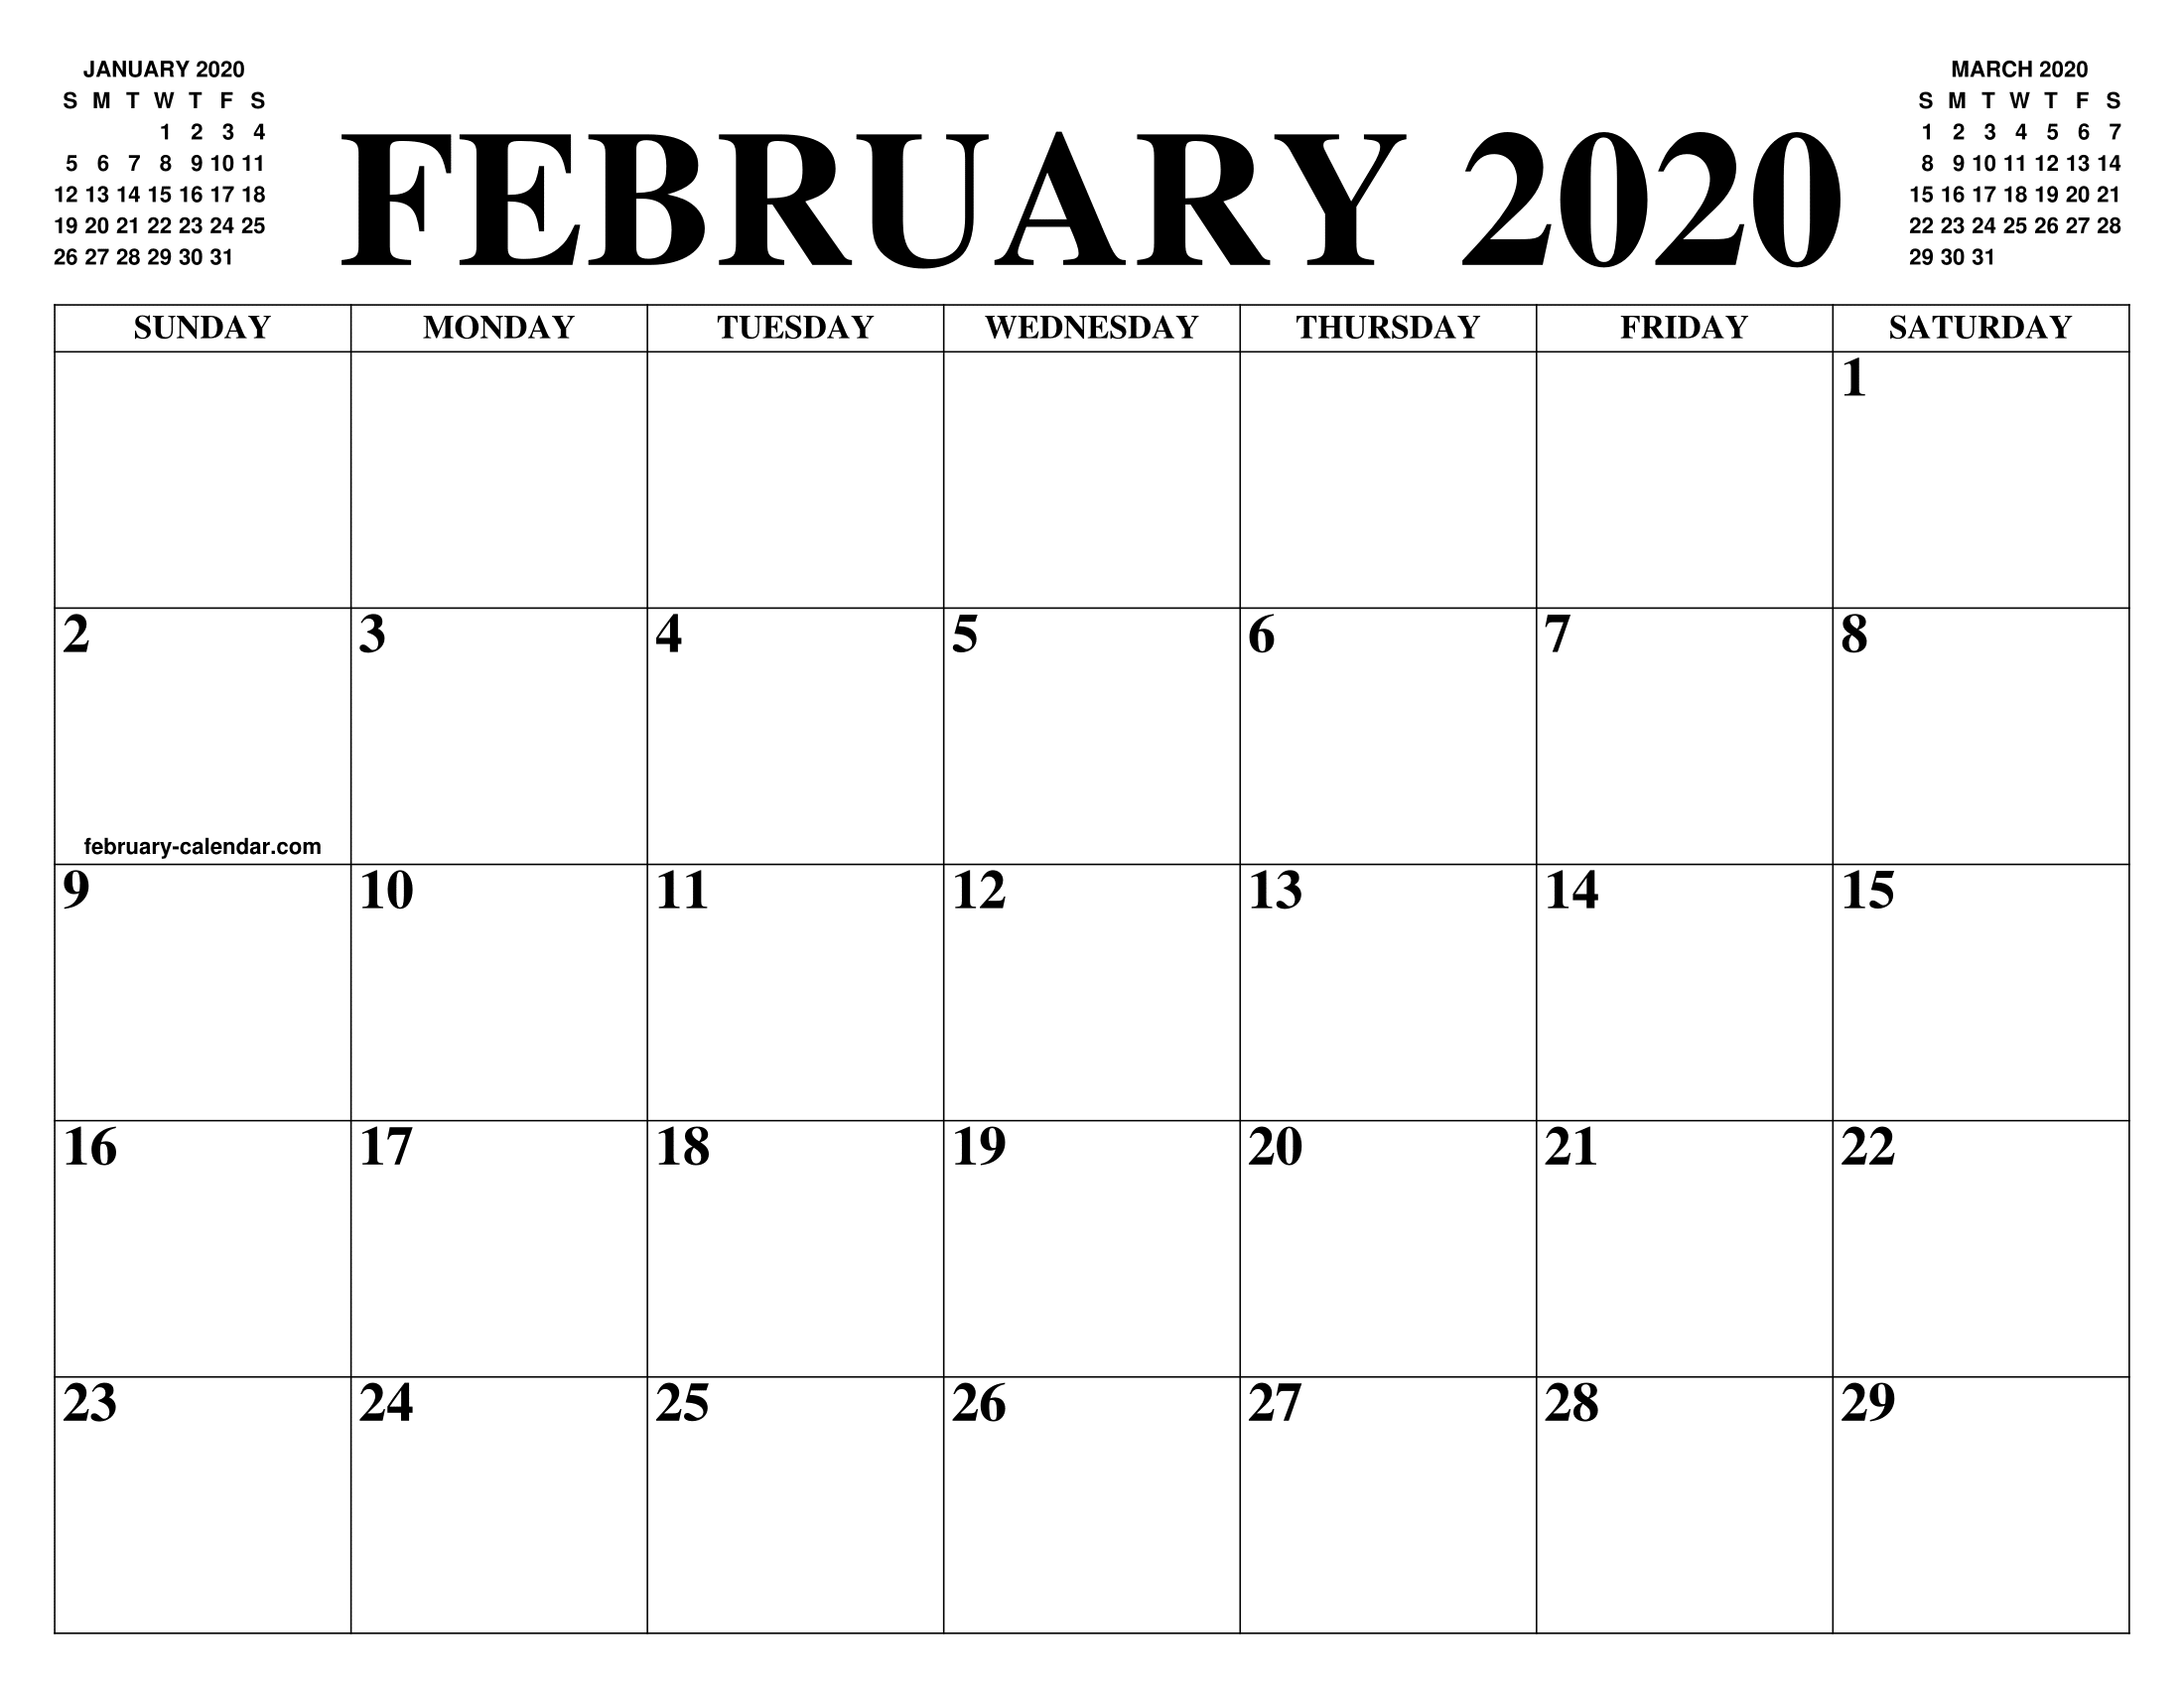 Calendar 2020 February And March.February 2020 Calendar Of The Month Free Printable February